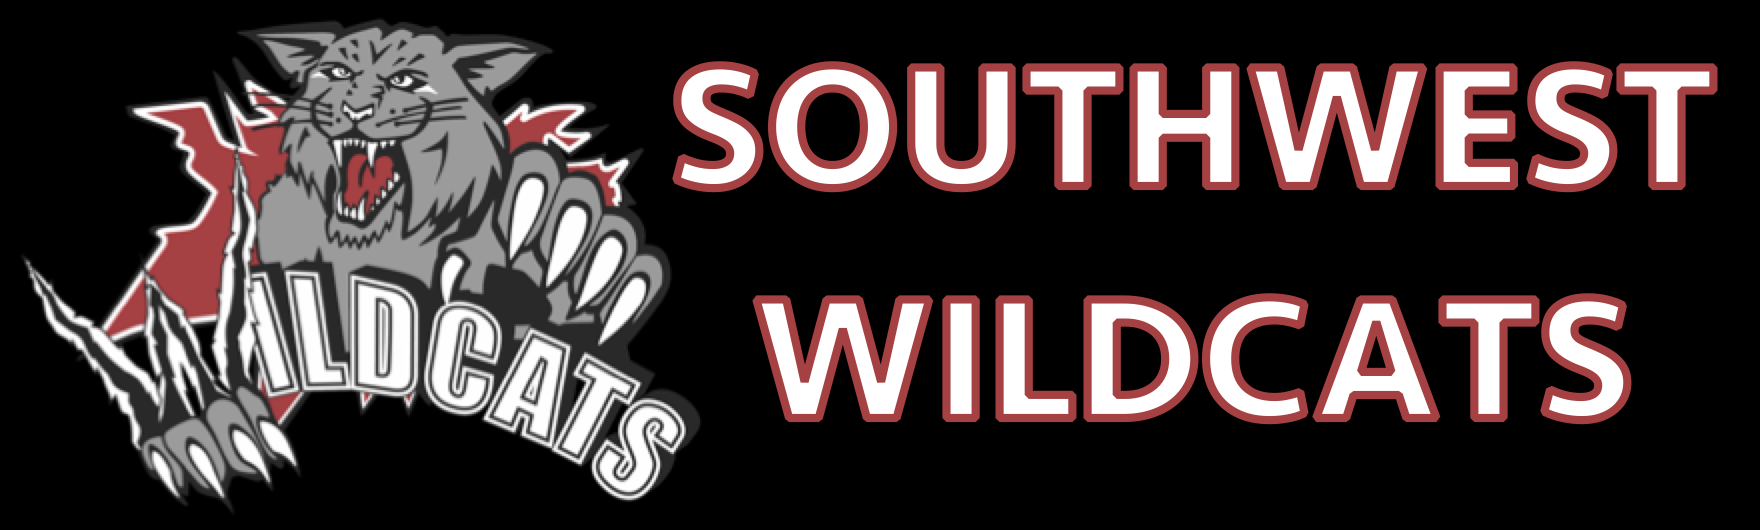 Southwest Wildcats Jr. Womens Hockey Team